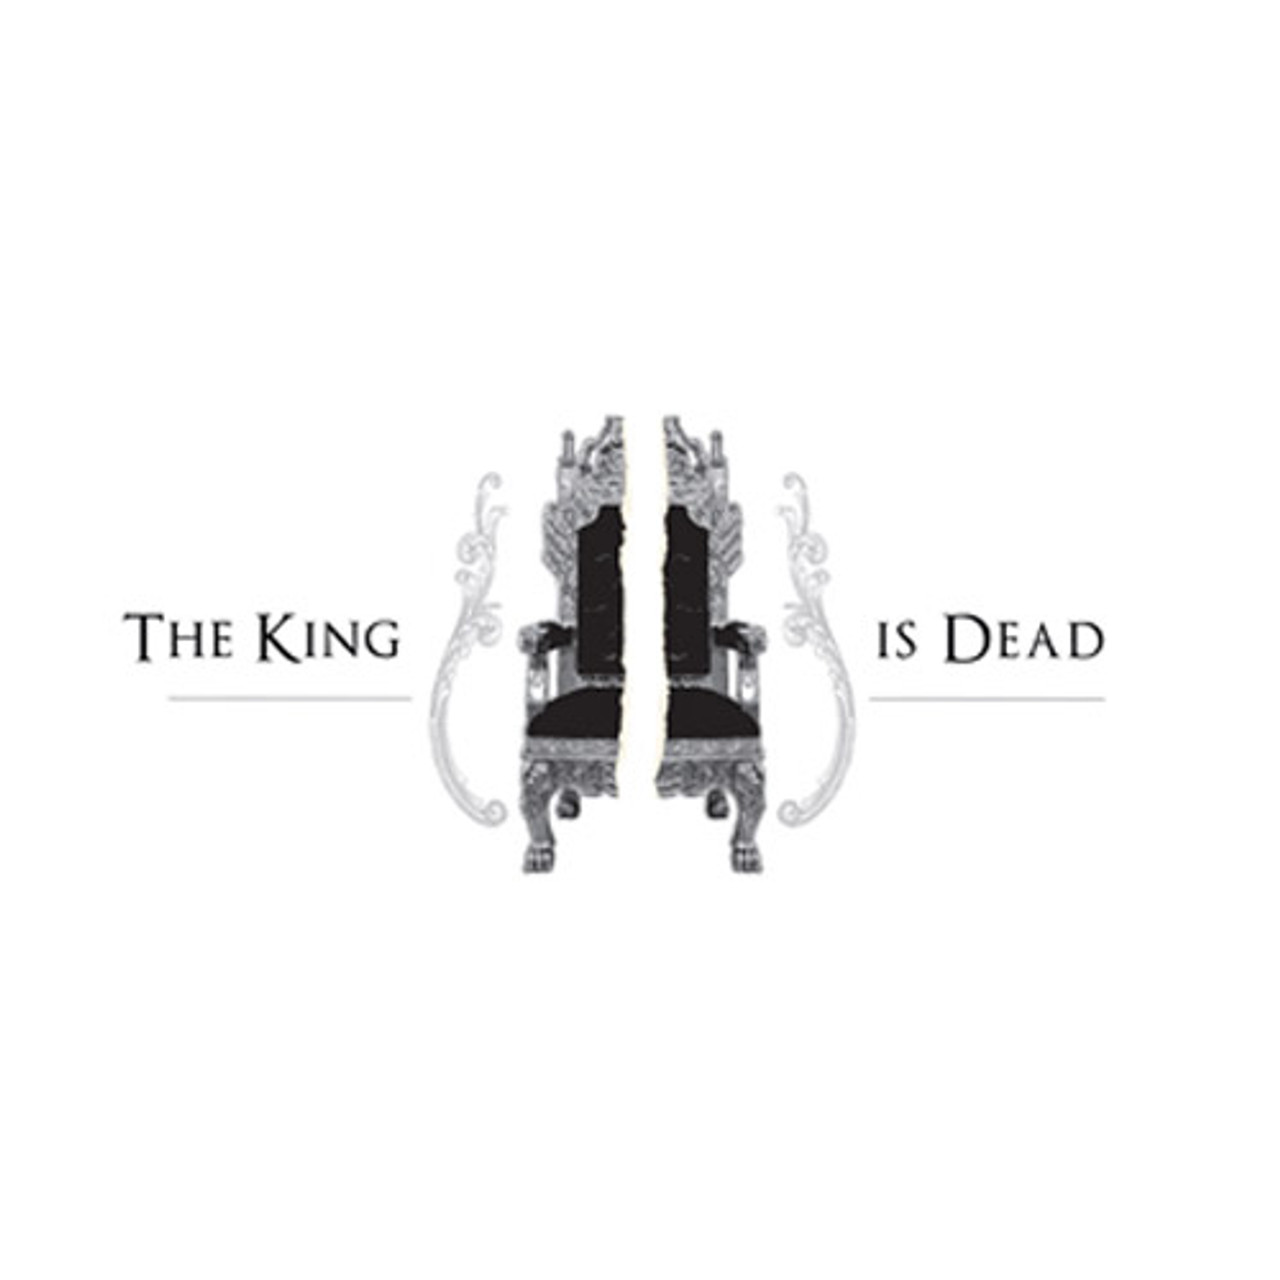 Caldwell The King is Dead Supreme Negrito Cigars - 7.5 x 50 (Box of 20)